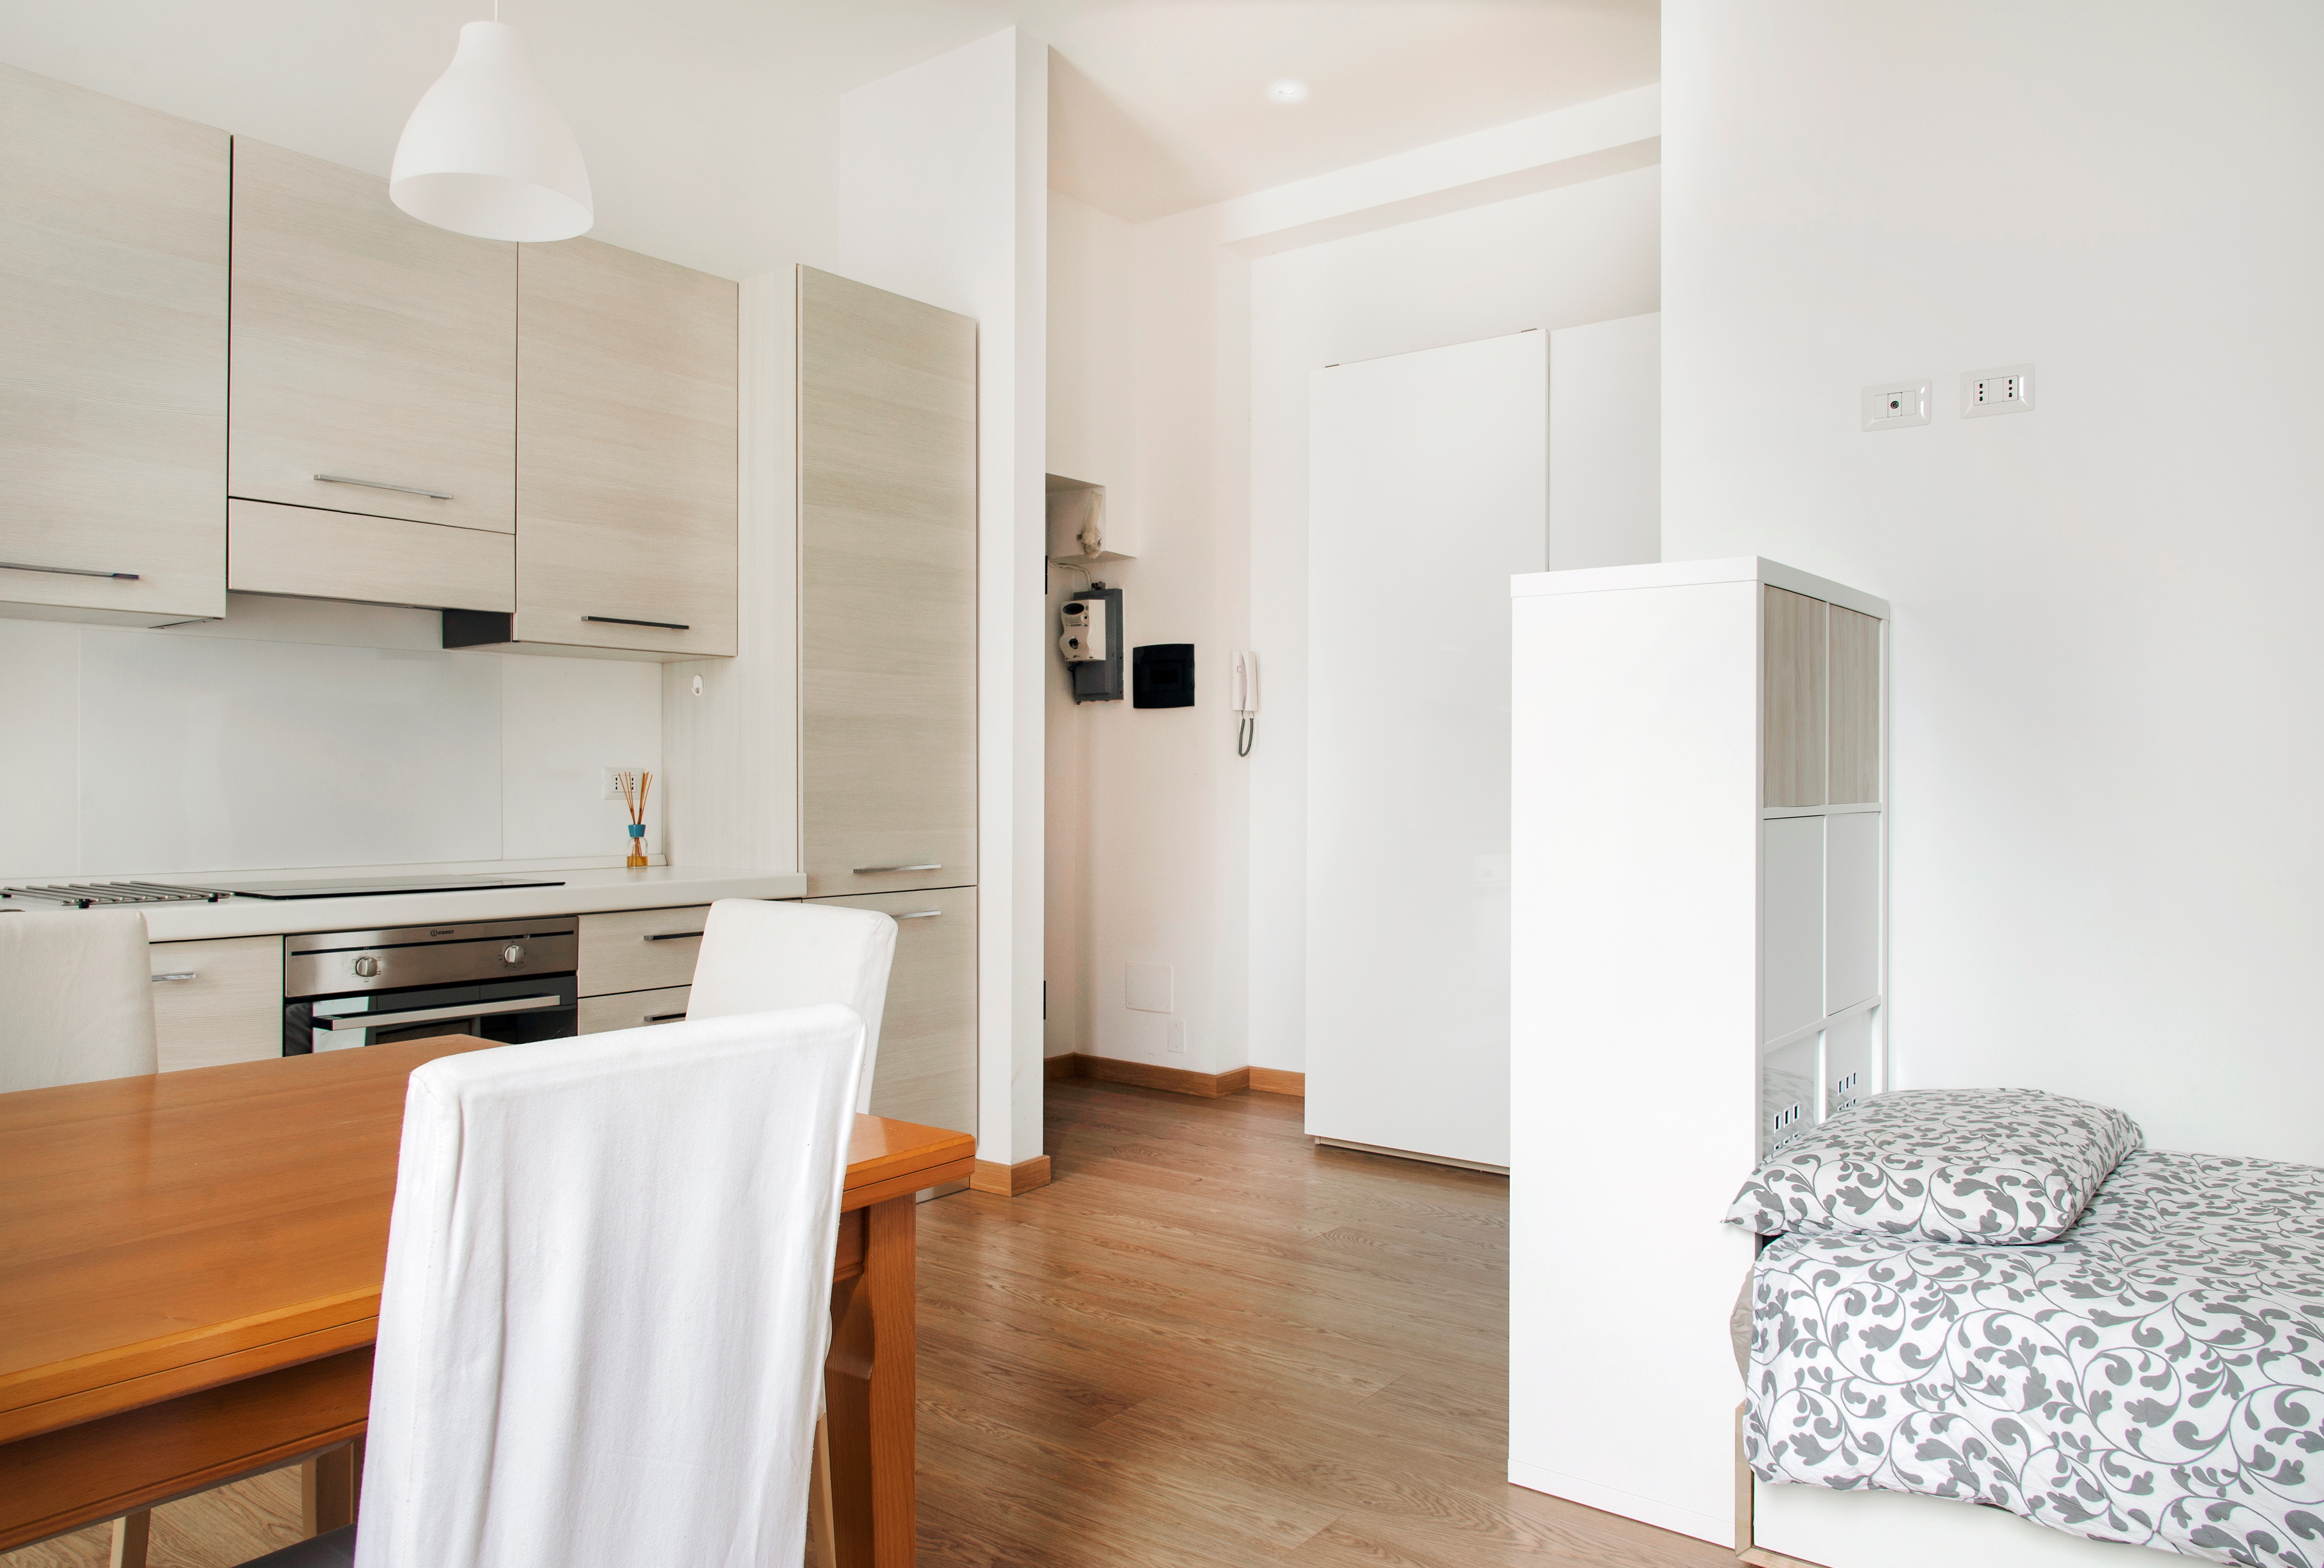 Student Apartment for rent in Viale Papiniano, 43, 3° floor, in Milano, Italy